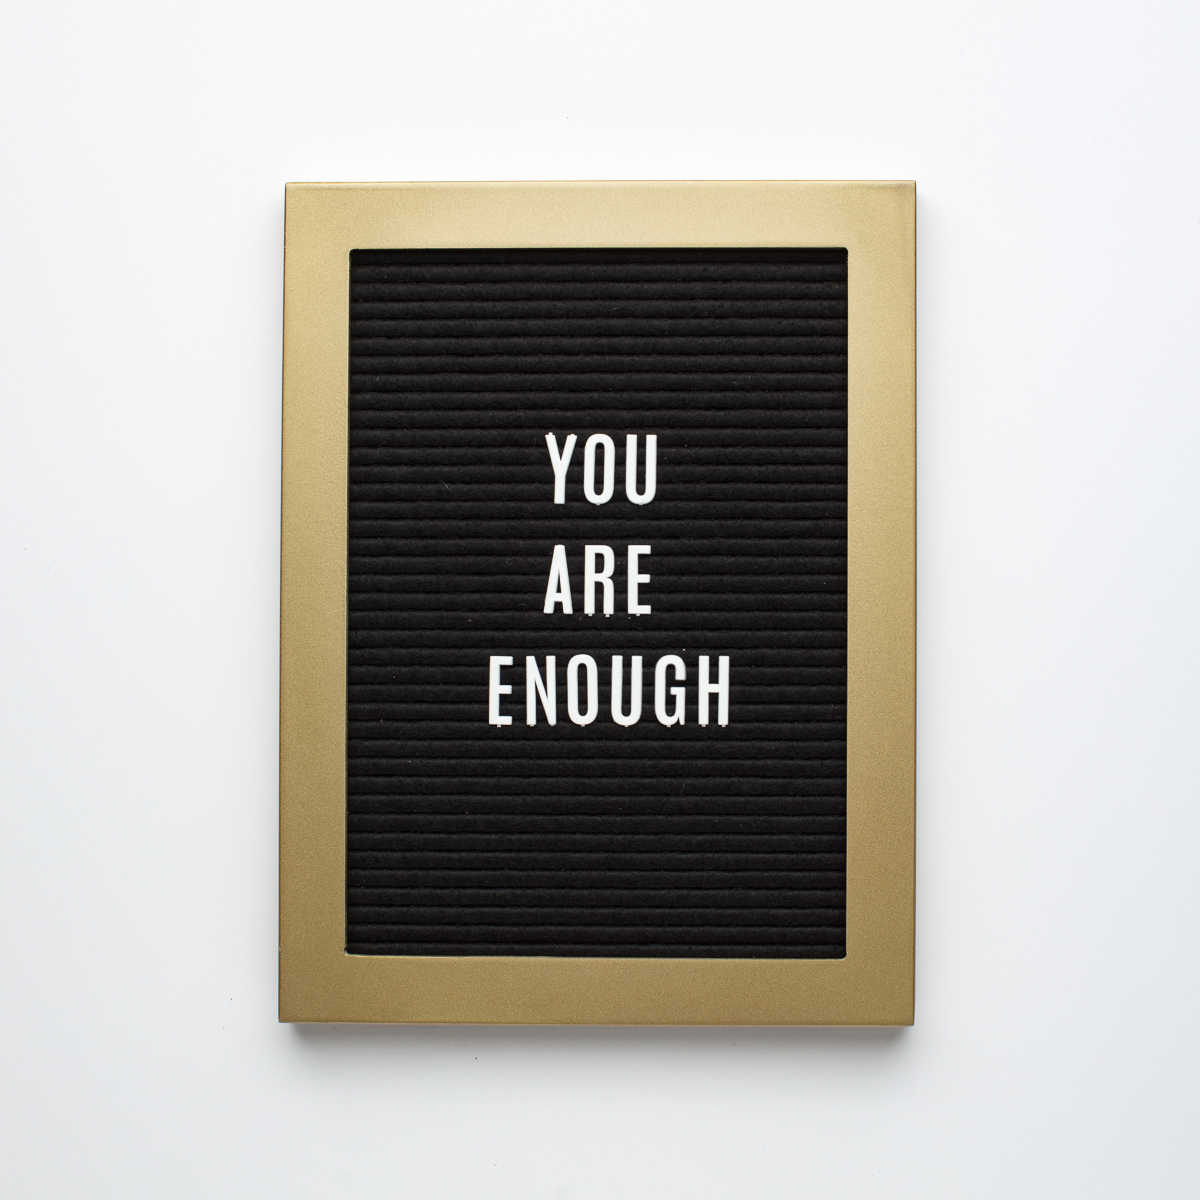 You Are Enough- Stop Your To-Do List Anxiety